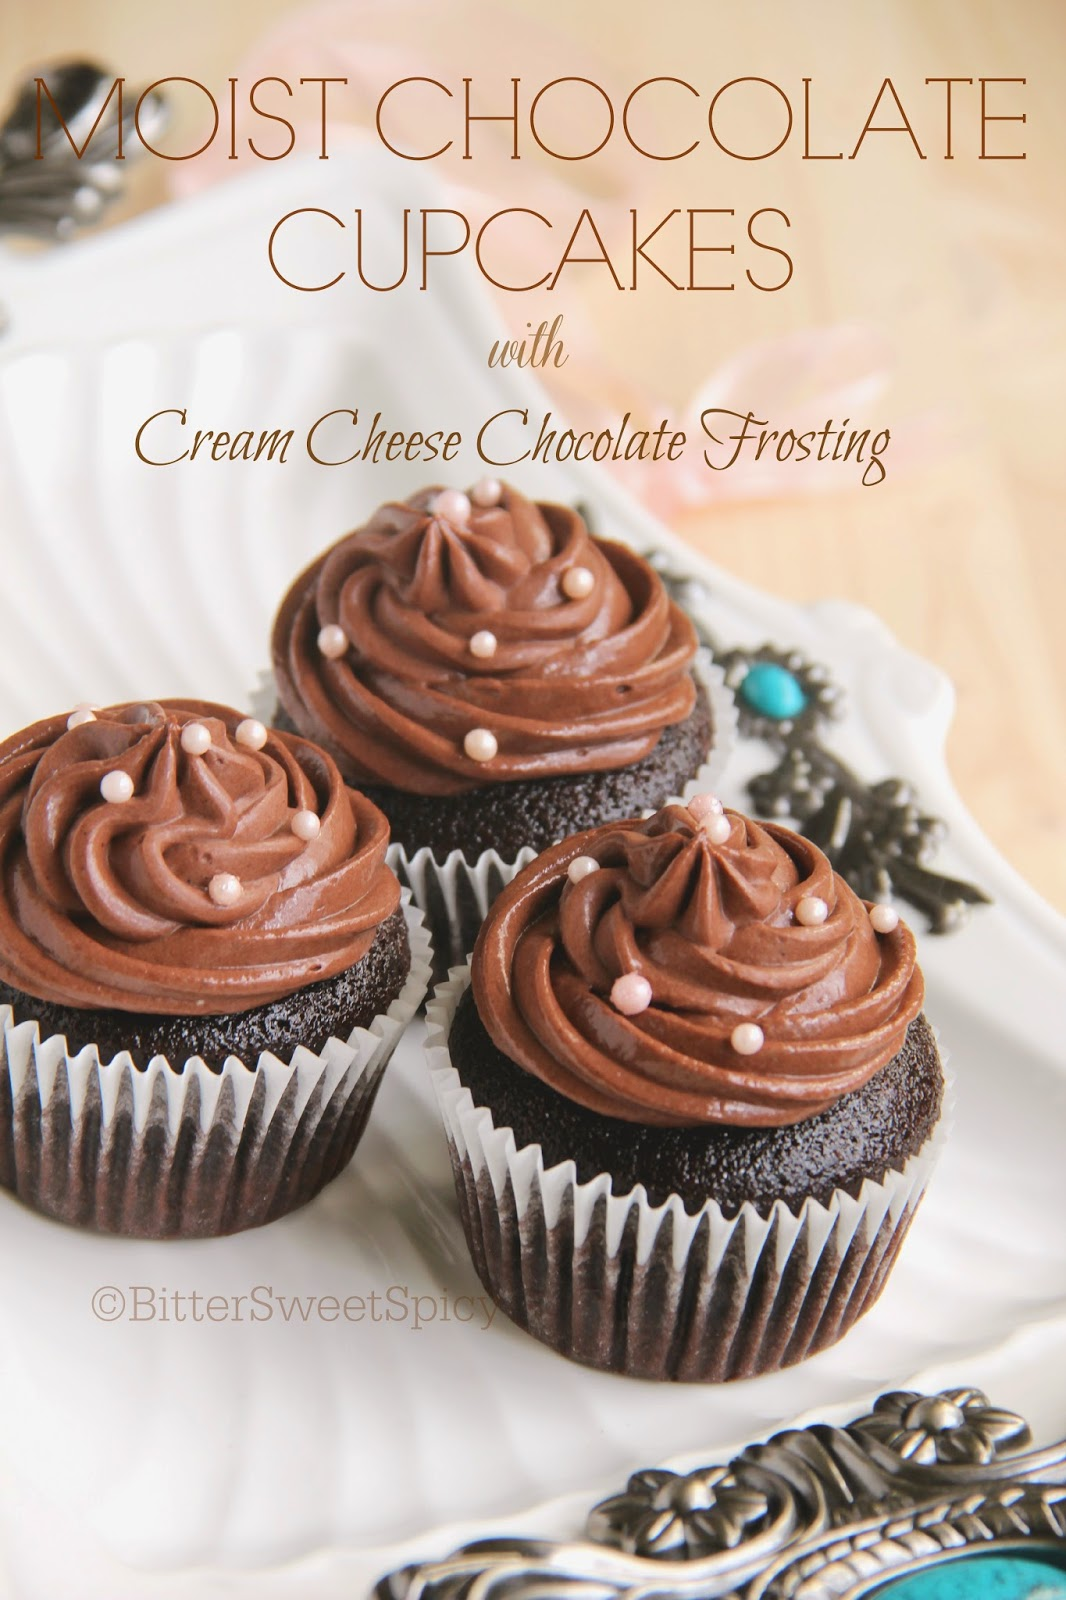 Bittersweetspicy Moist Chocolate Cupcakes With Cream